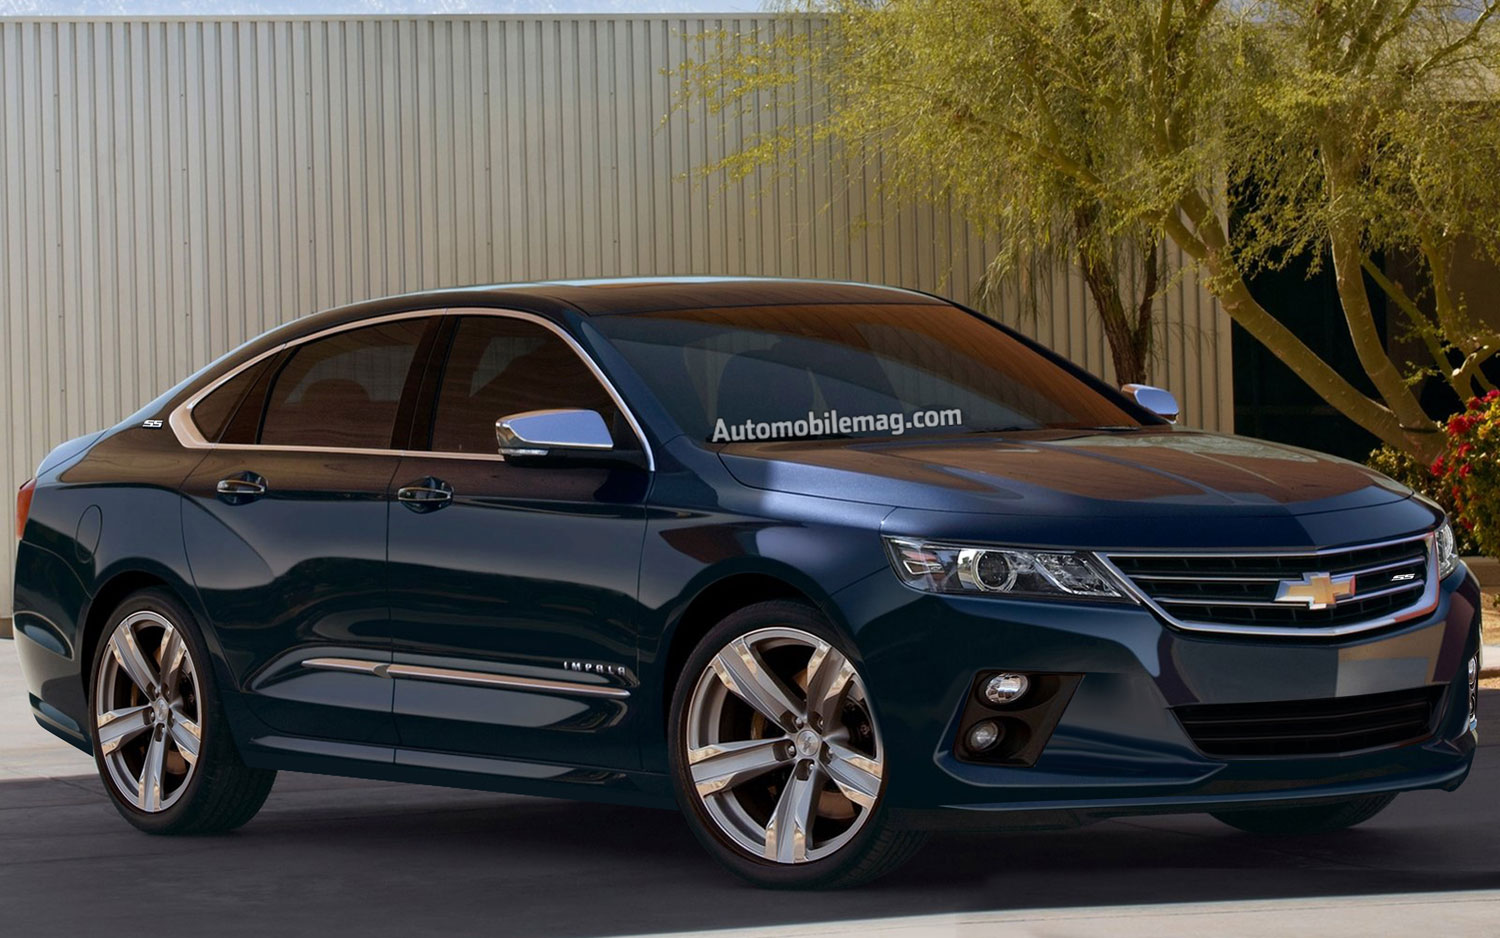 Should Chevrolet Produce an Impala SS?